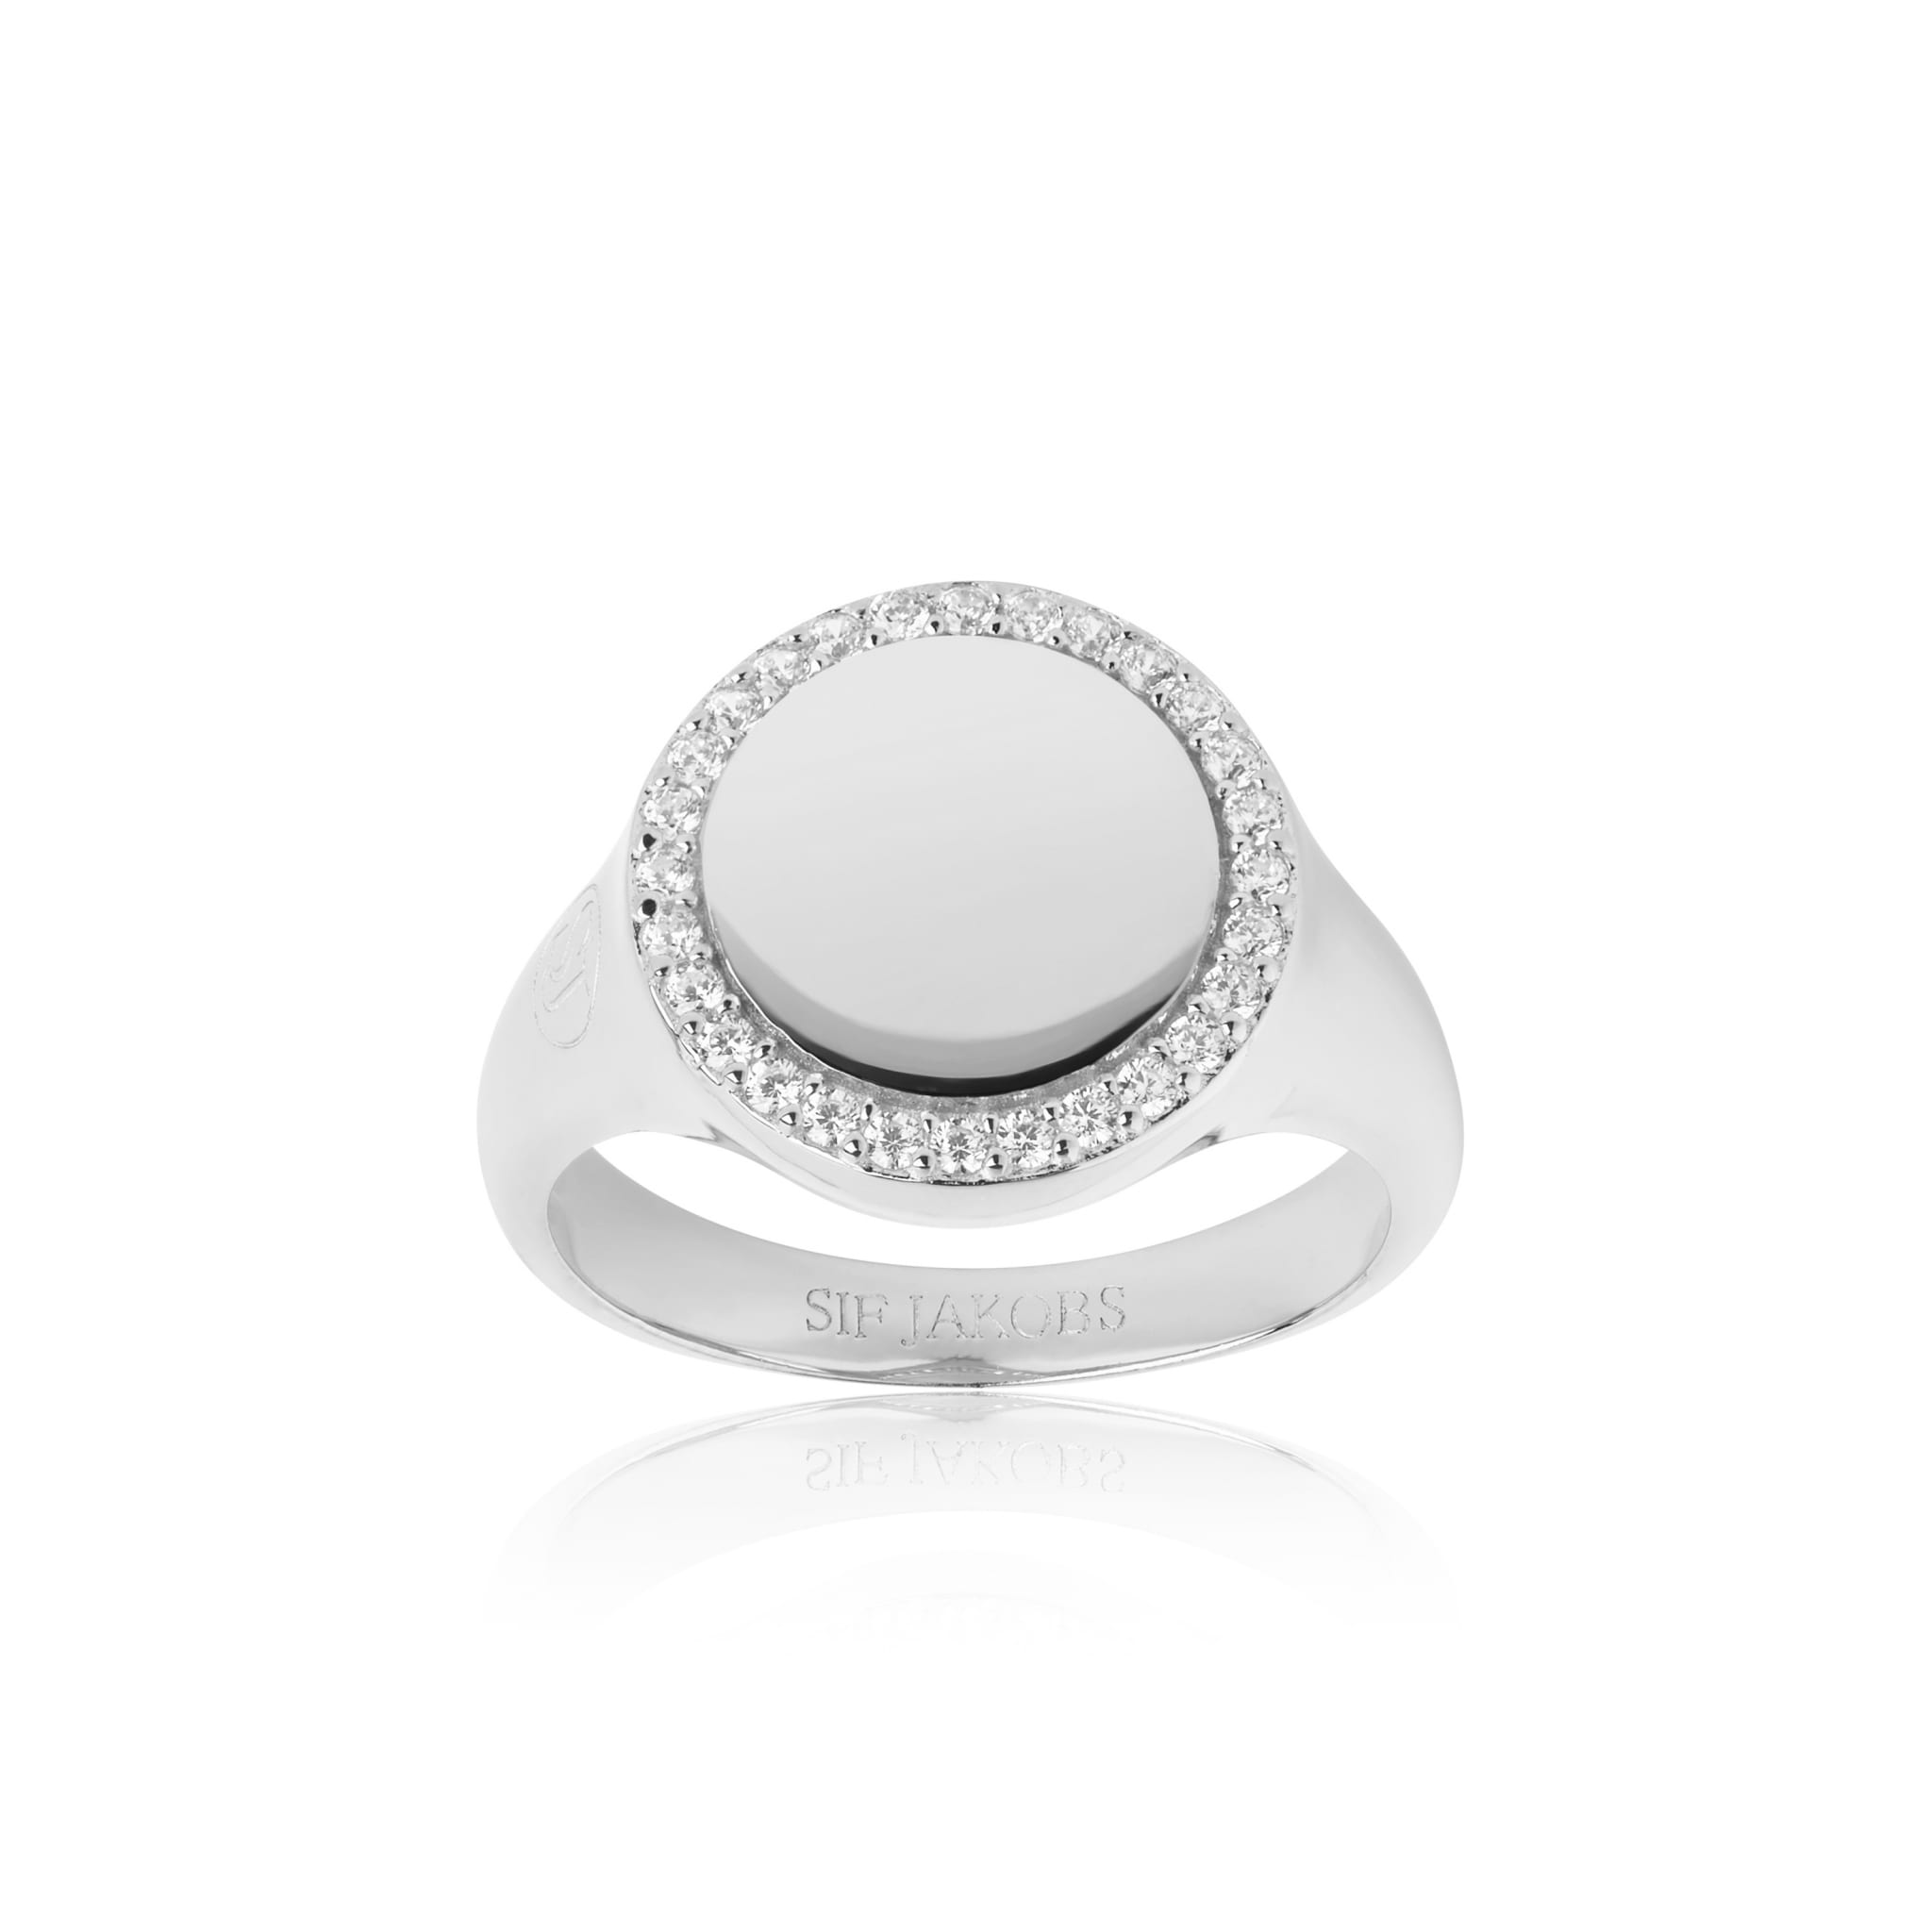 IN PICS: Sif Jakobs Jewellery expands signet ring offer